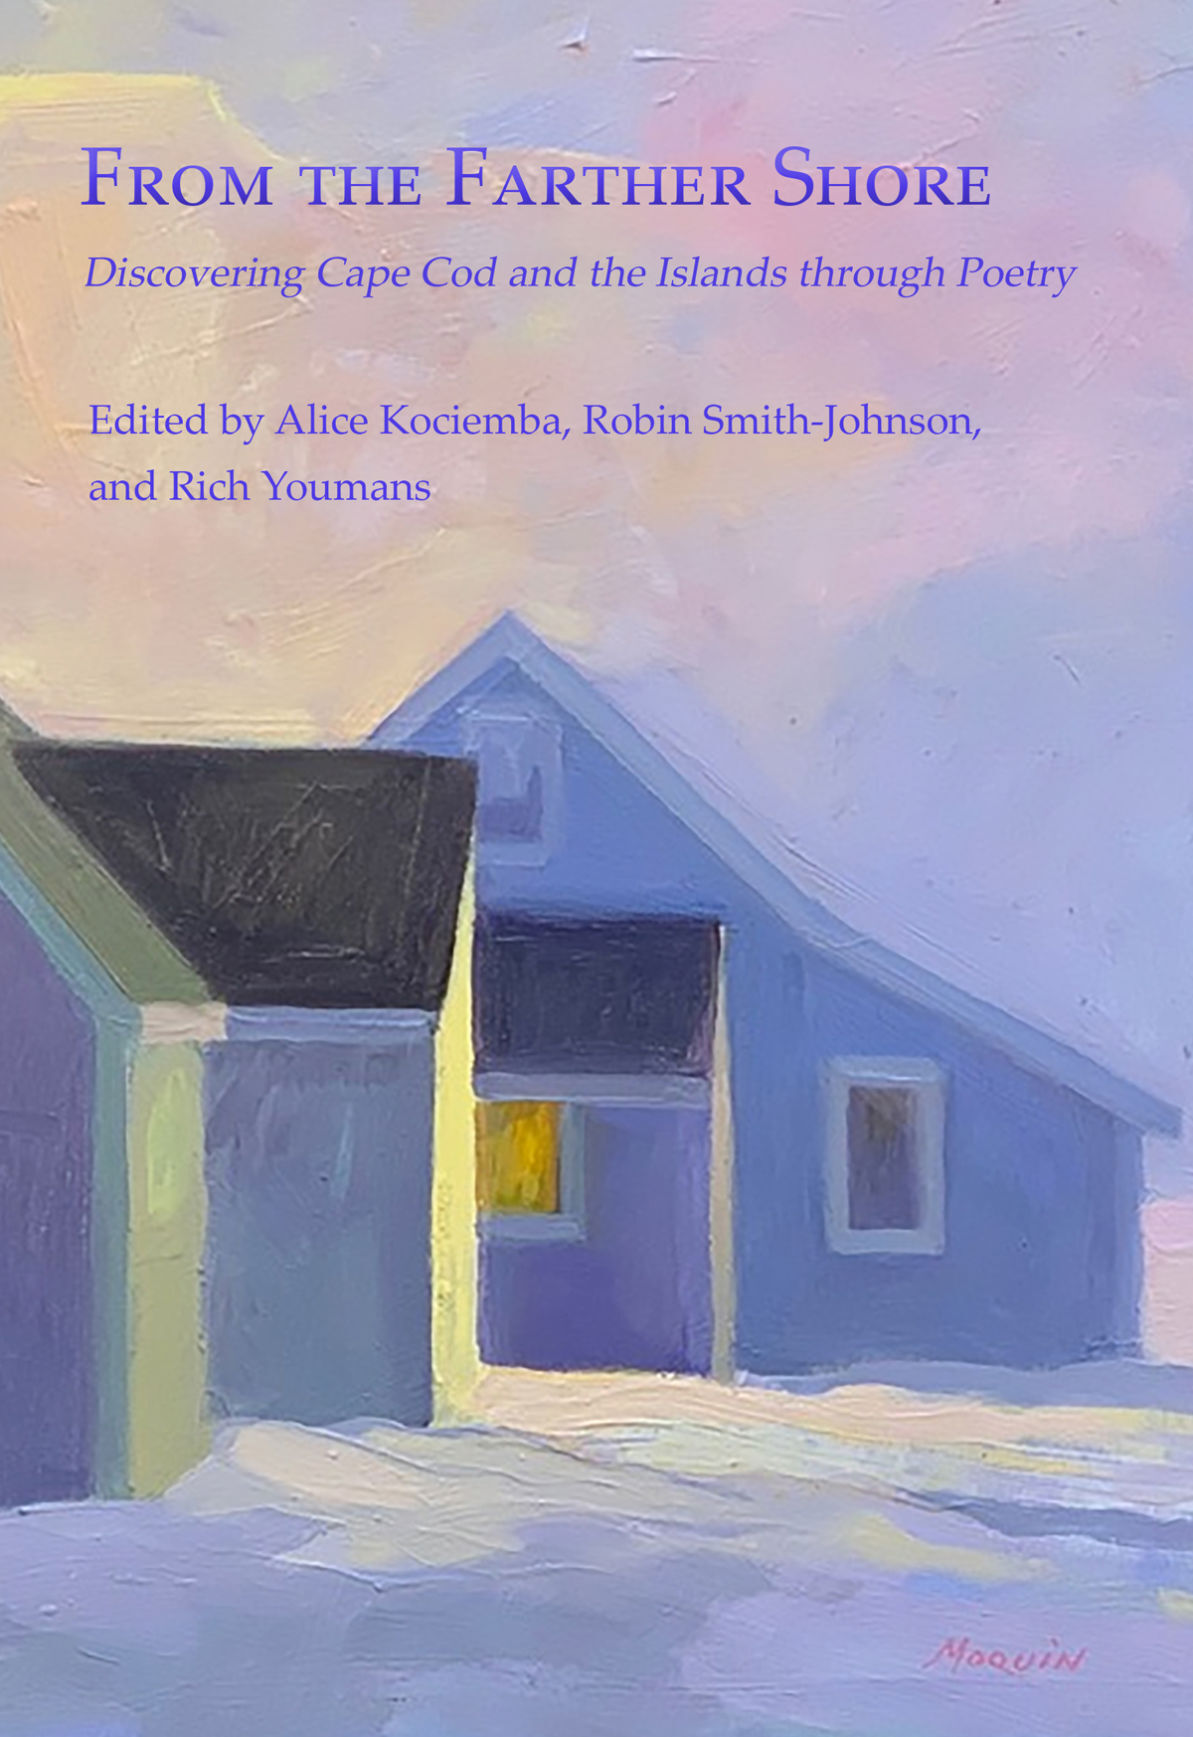 Book Launch Celebration Is Saturday For New Poetry Book